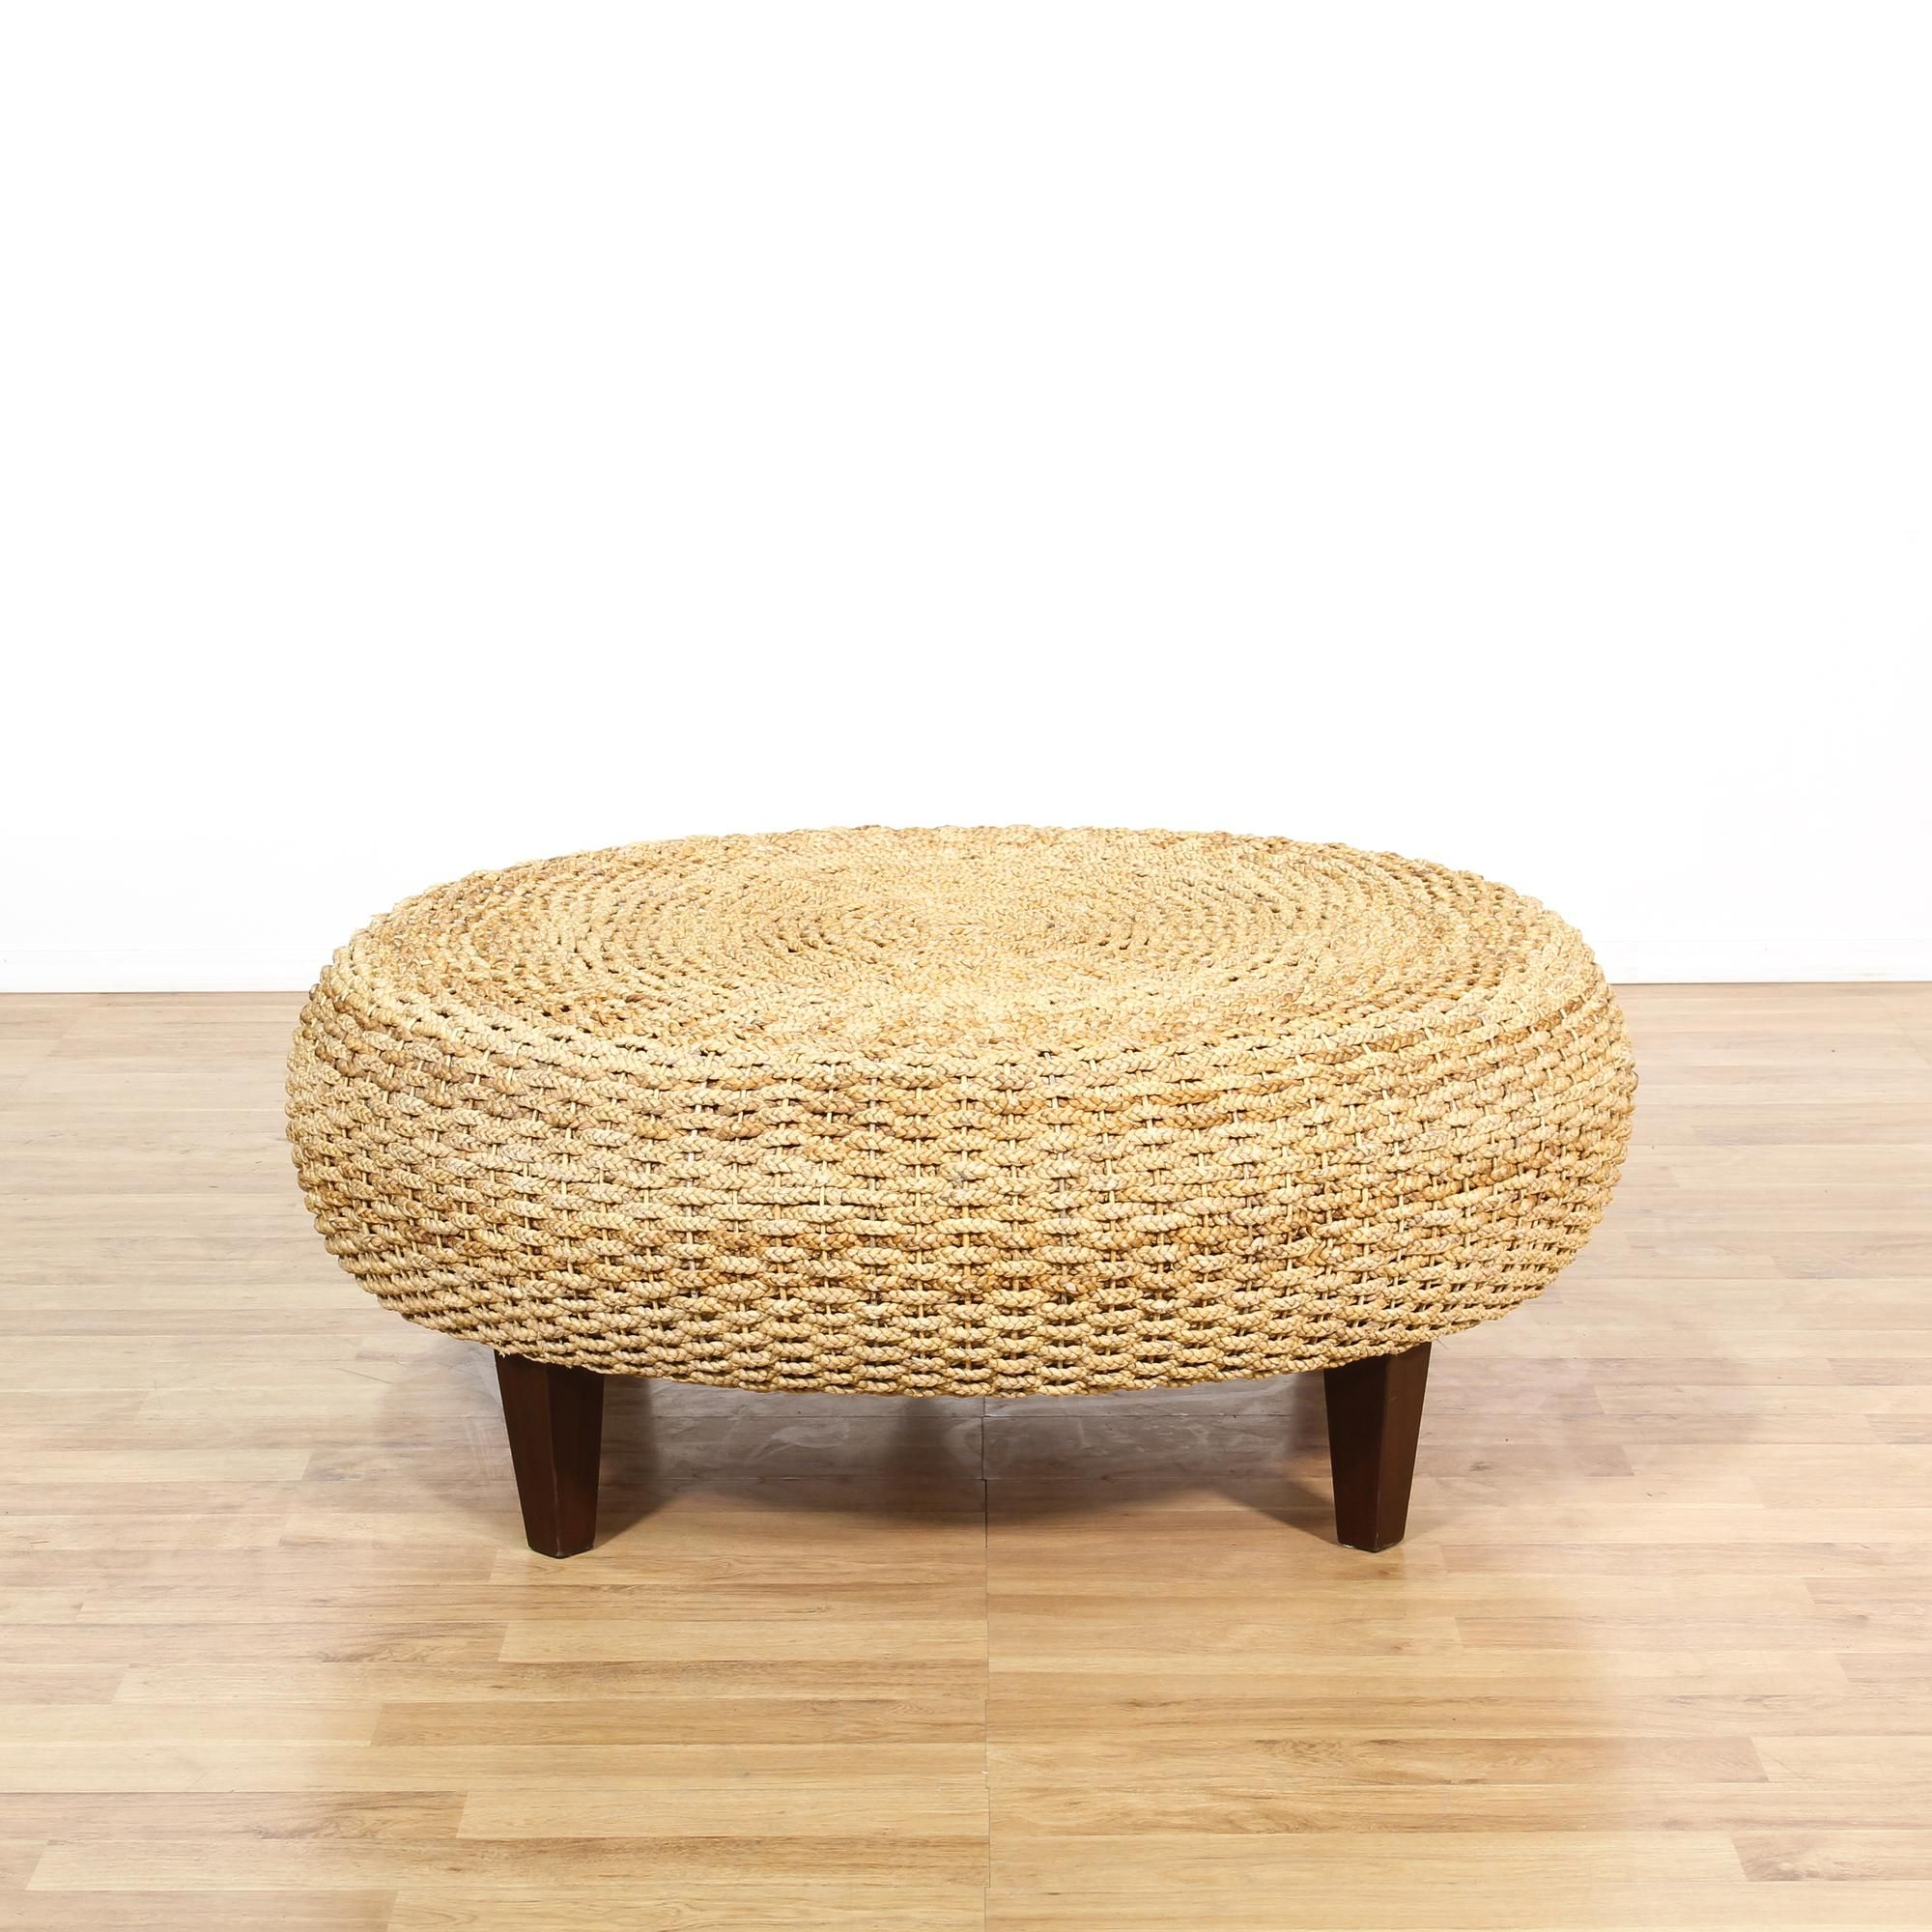 This Low Coffee Table Is Featured In A Durable Synthetic Woven Material This Coastal Style Ottoman Has Sturdy Wooden L Coffee Table Ottoman Coffee Table Table [ 2000 x 2000 Pixel ]